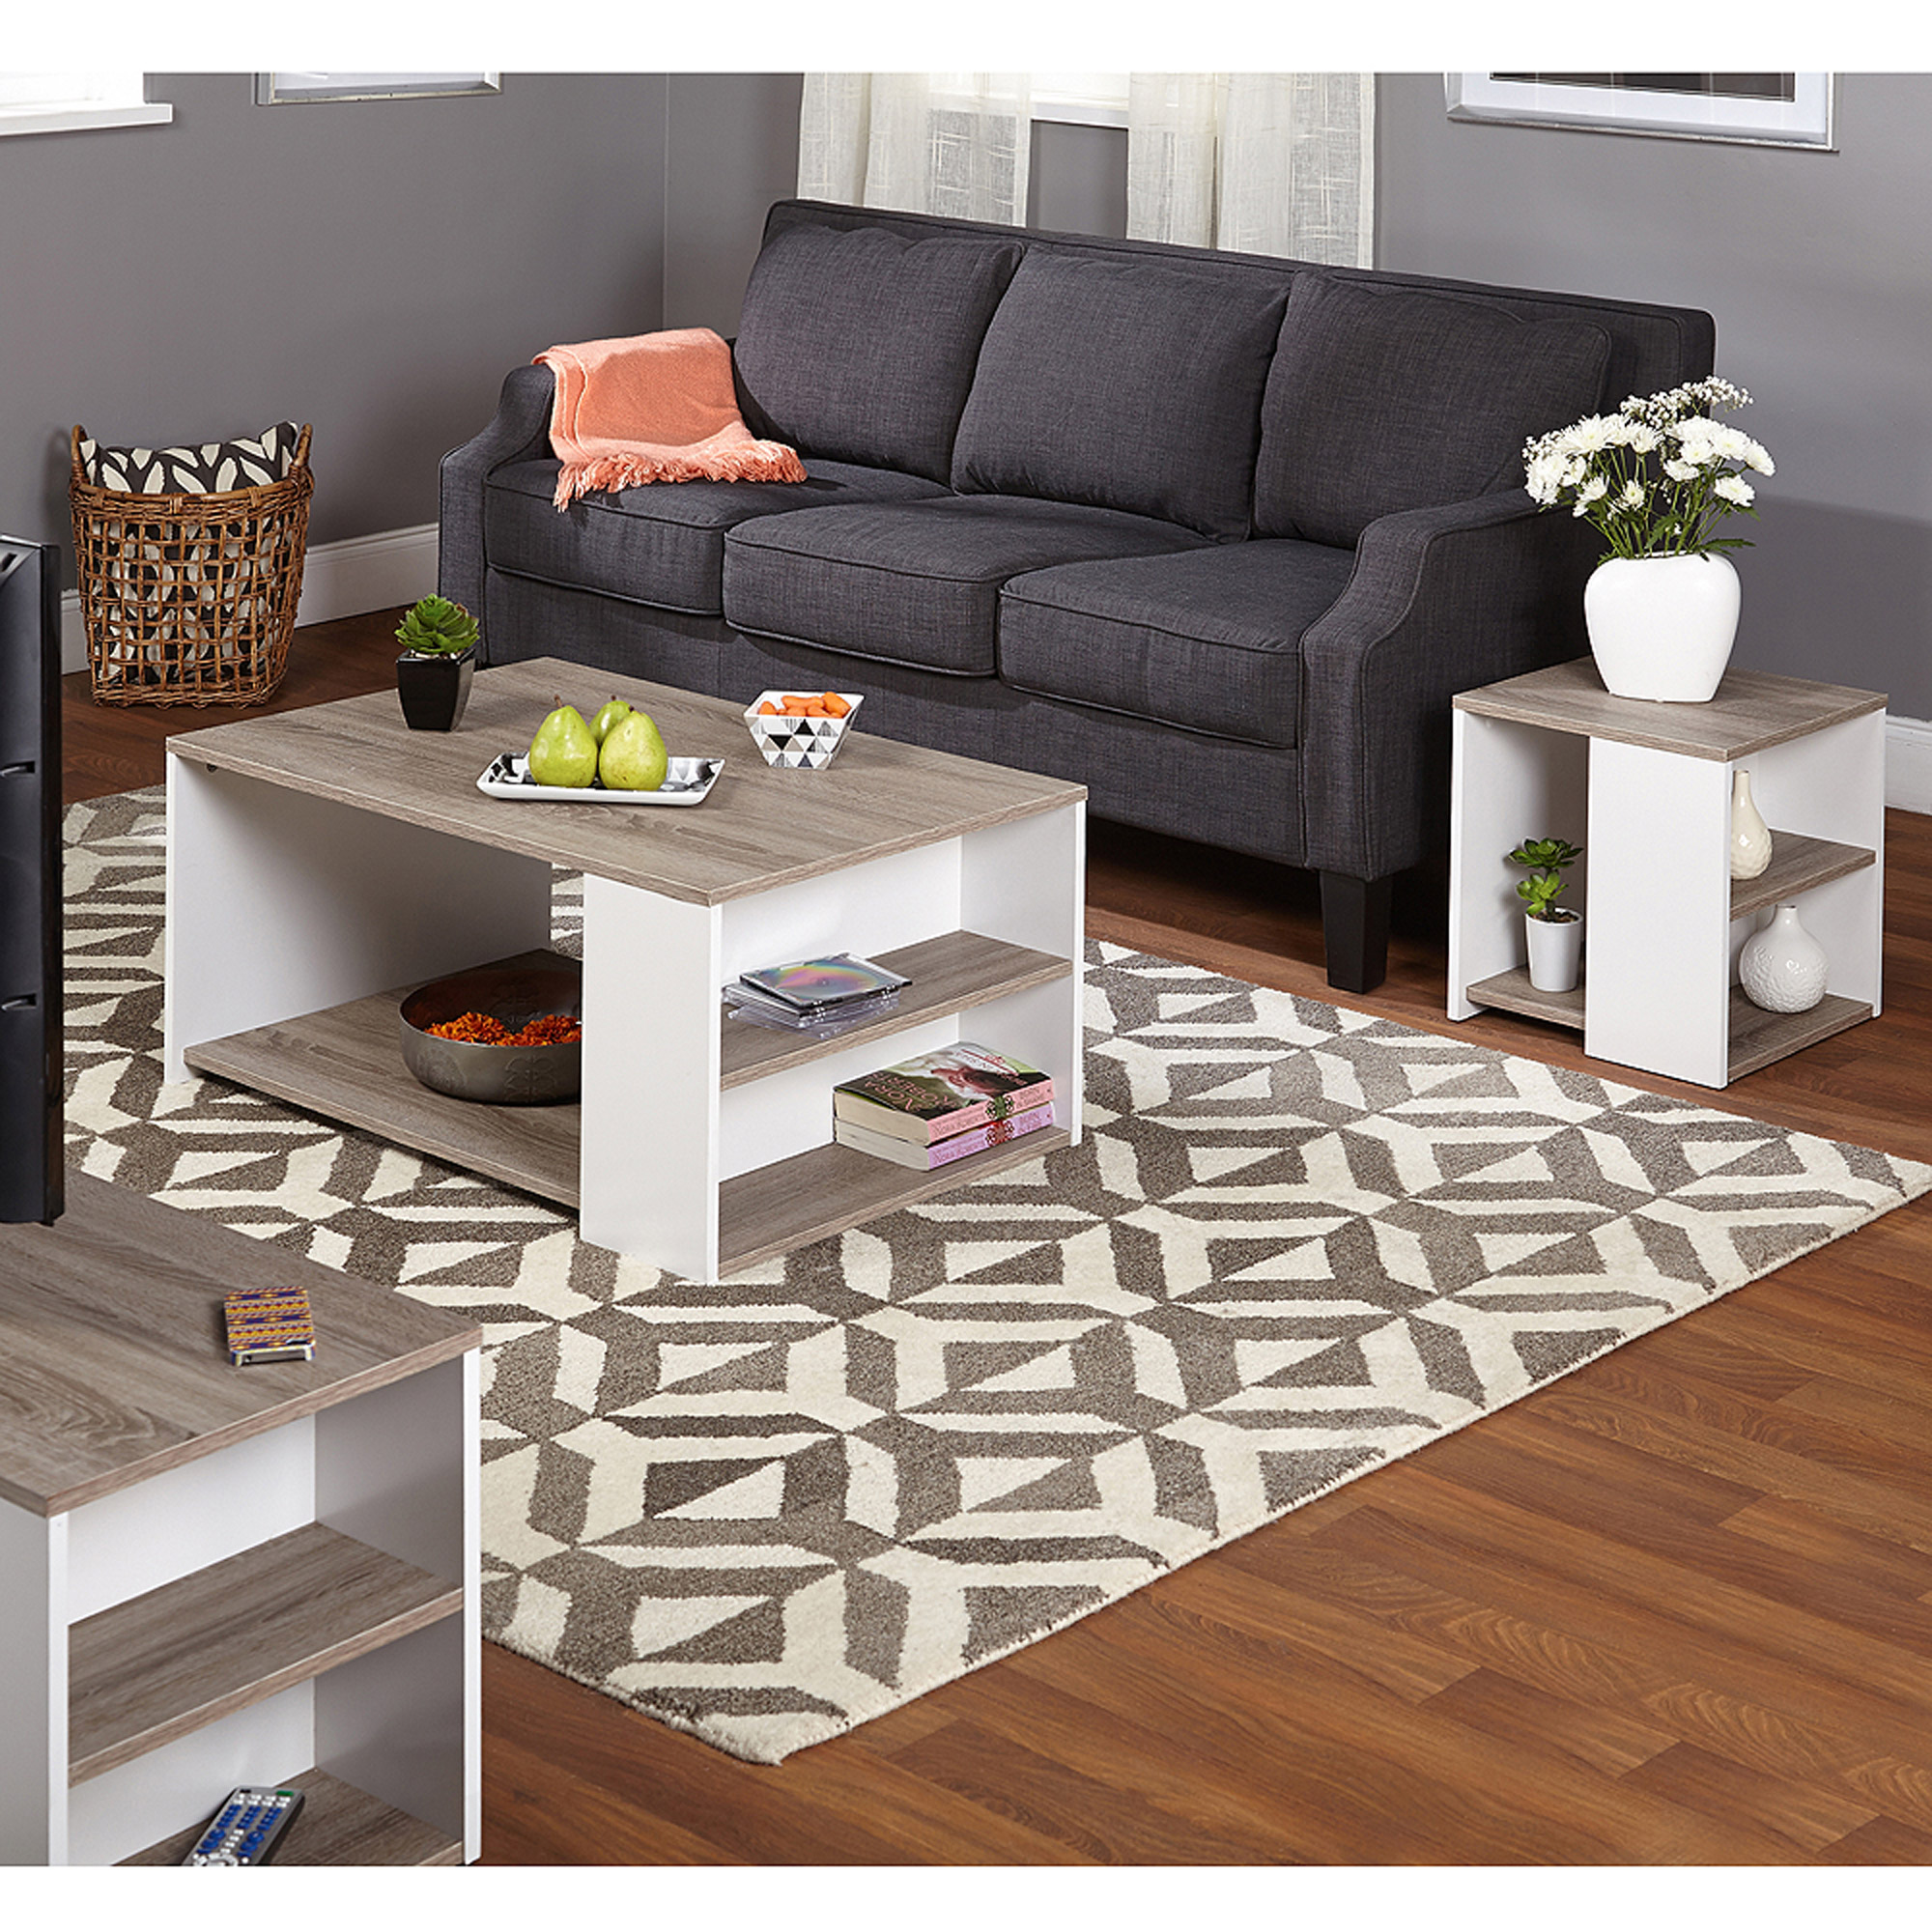 Urban Coffee Table Walmart